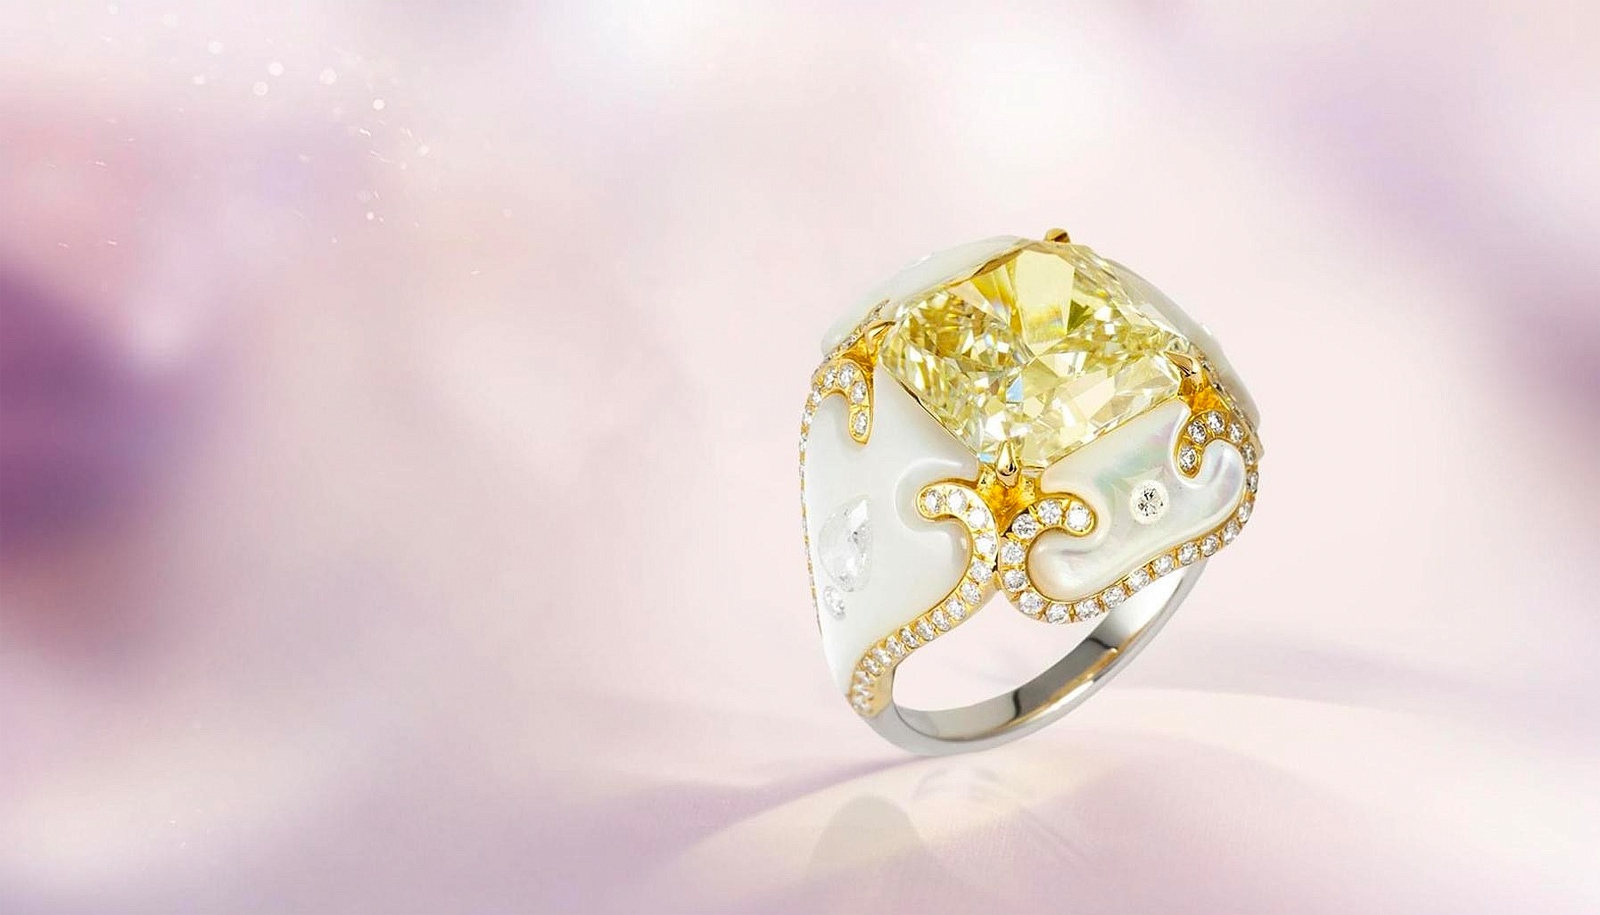 Boghossian Art of Inlay yellow diamond ring with mother-of-pearl and colourless diamonds